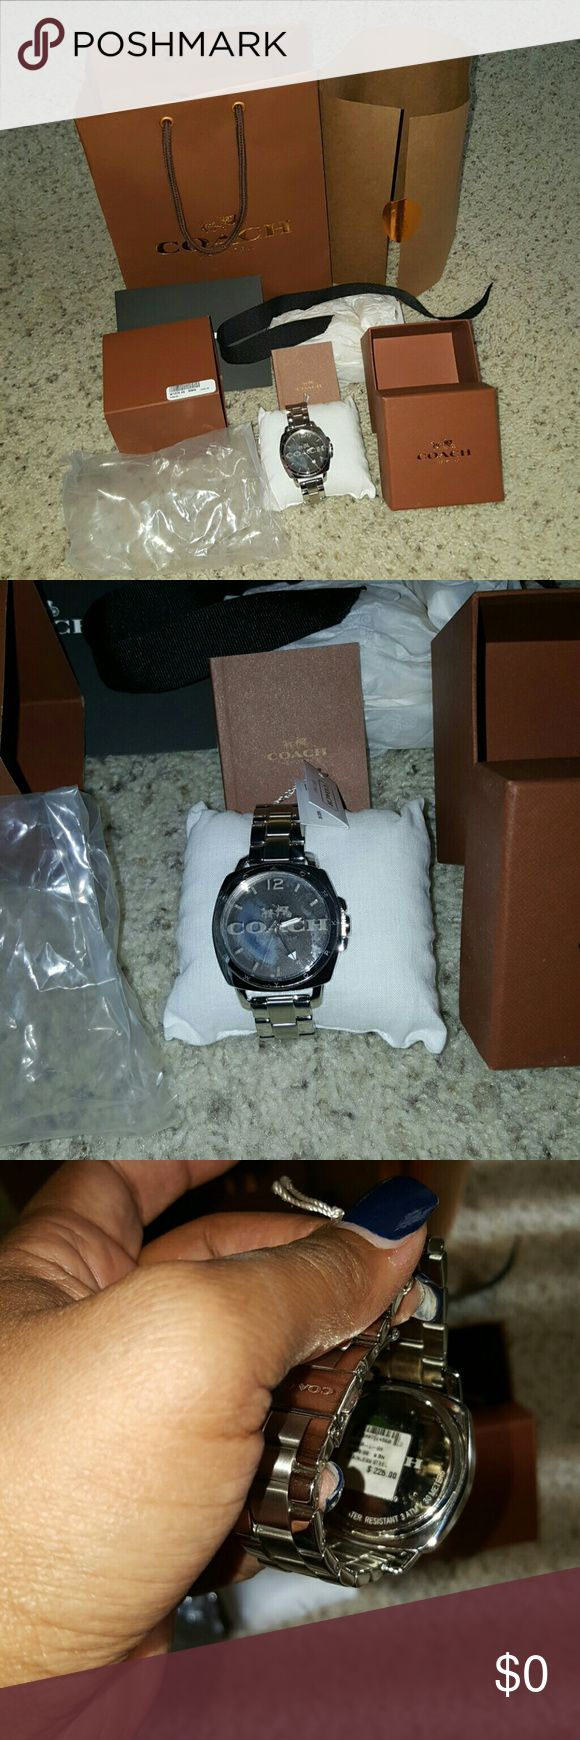 AUTHENTIC COACH LARGE FACE WATCH Authentic Coach watch. Comes with everything you see. 🚫PRICE IS FIRM🛇. Watch is not even a year old. Its still ticking. Still has the plastic protection on the face. Bought from retail store. Looks like a blue tint on face but thats because of the plastic. Will take more pics if needed. Coach Accessories Watches